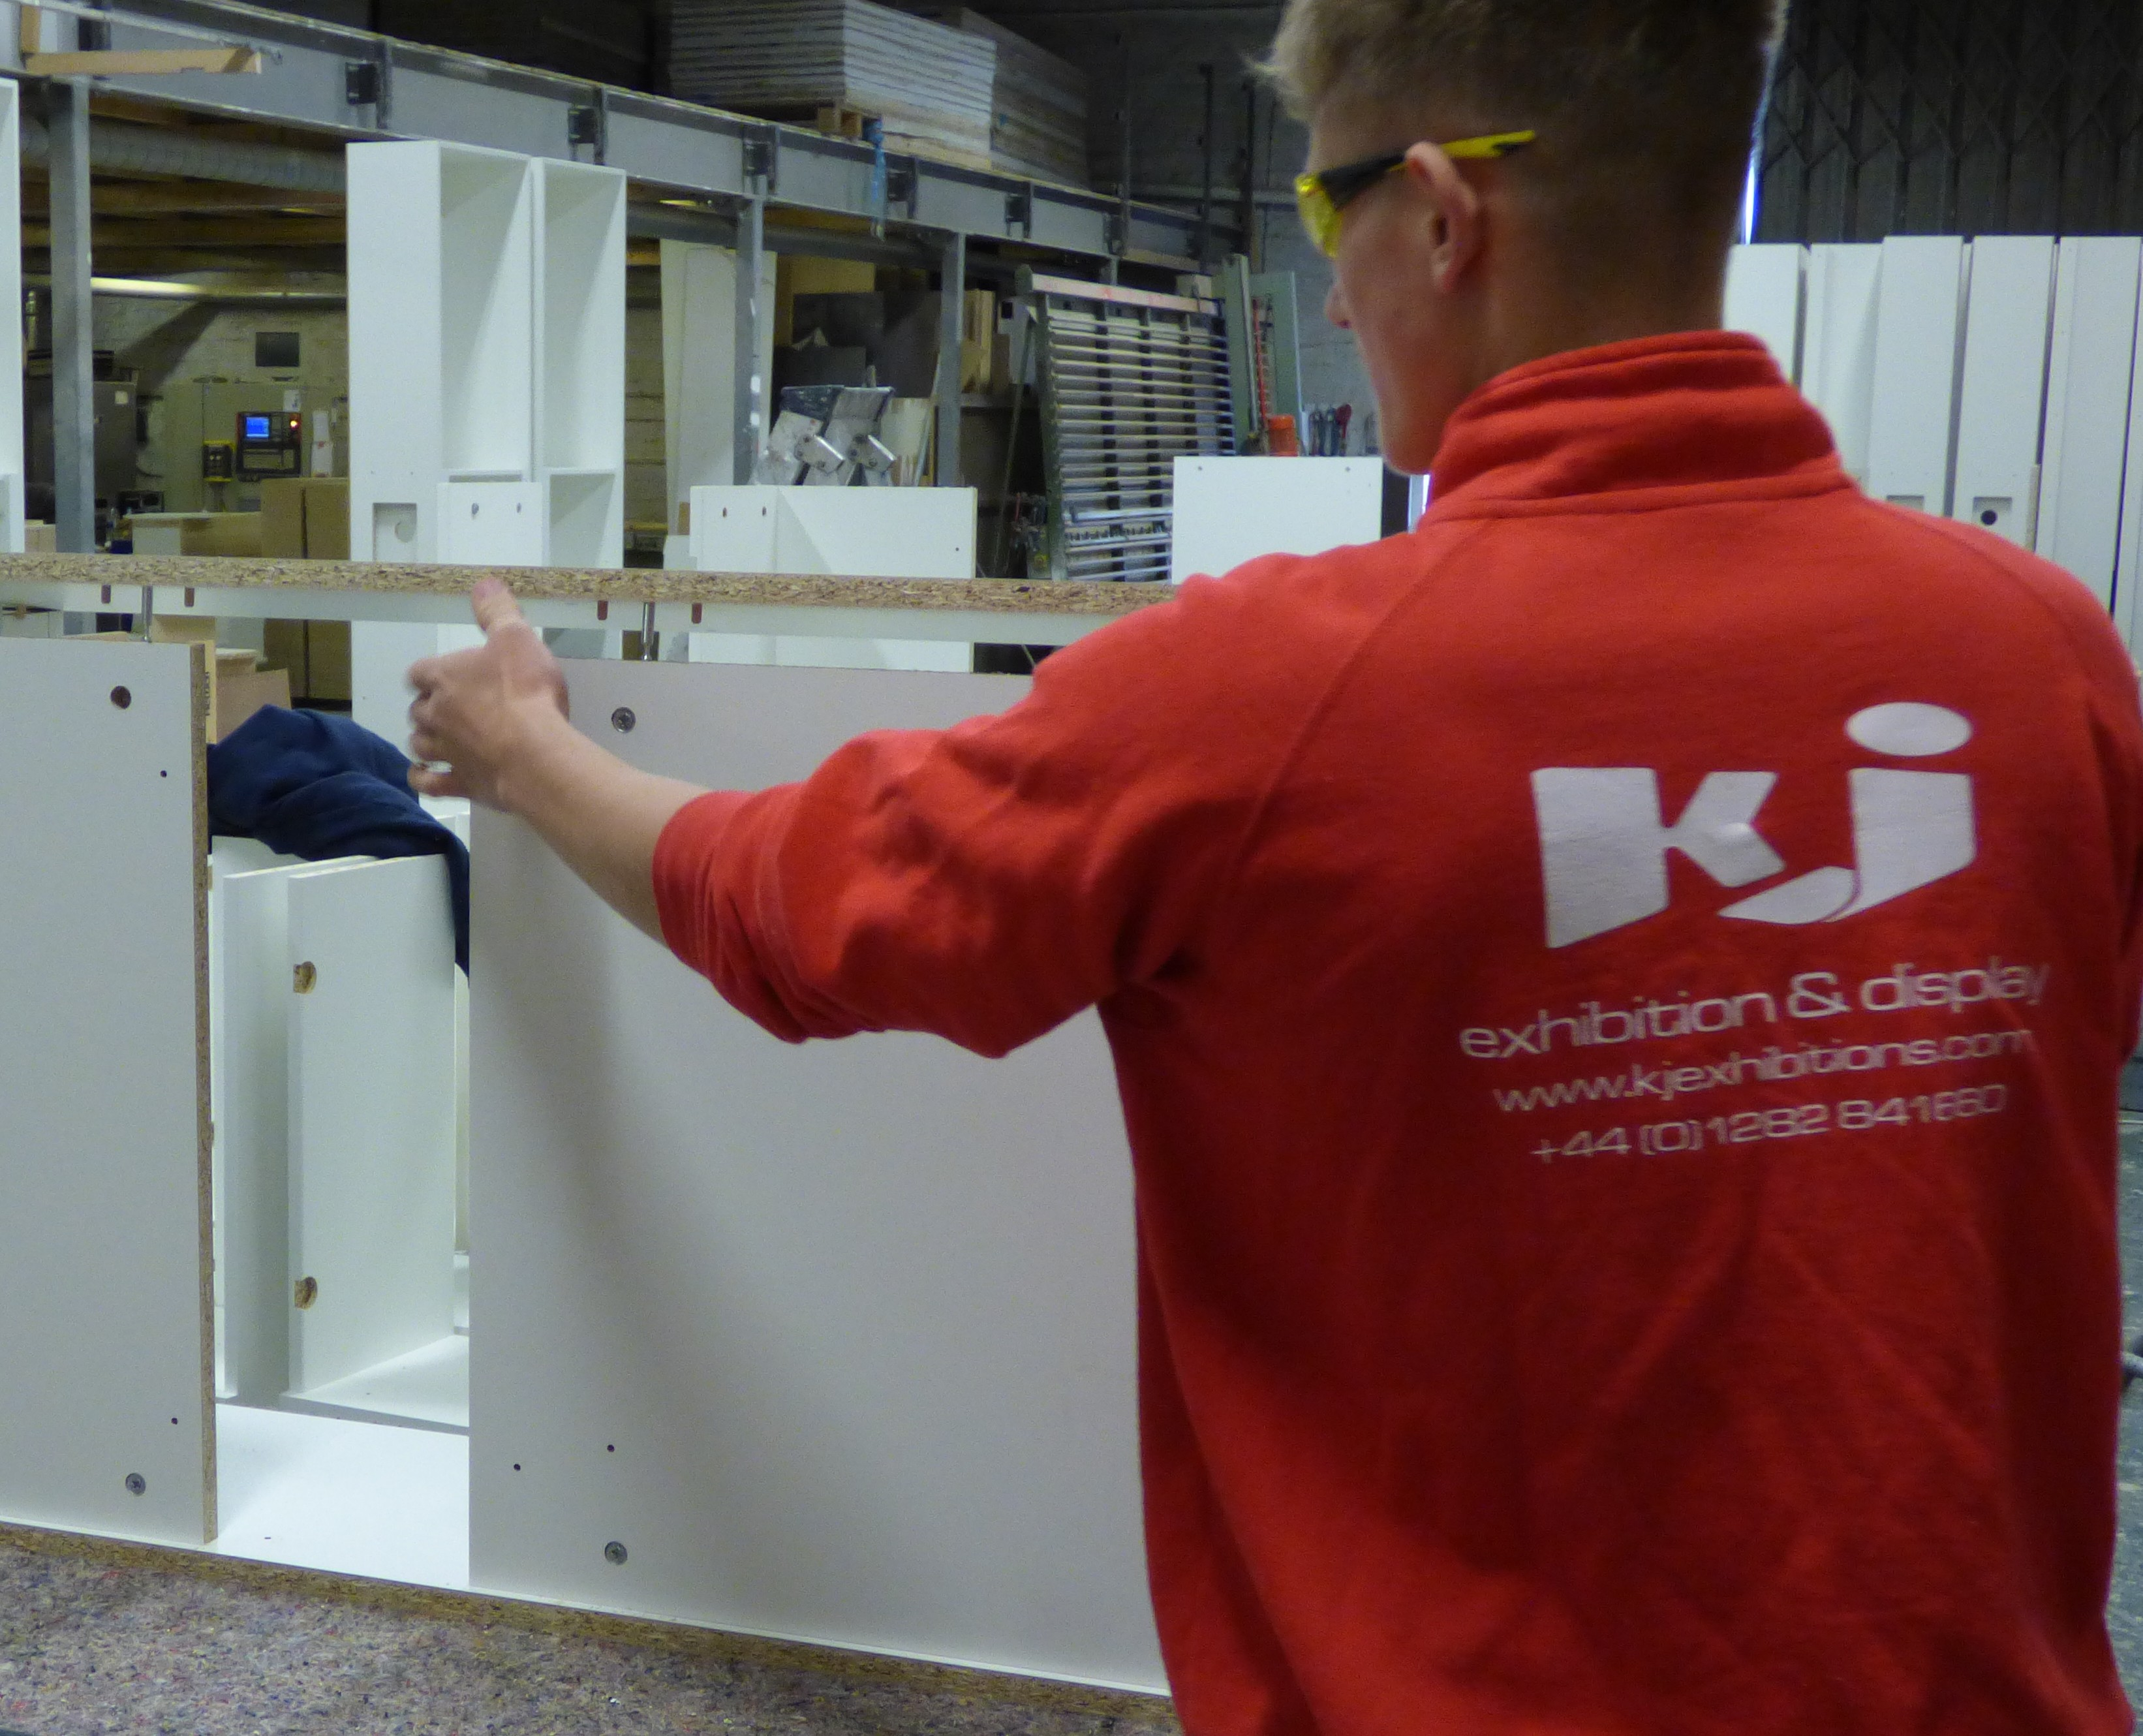 Exhibition Stand Builders North West : Cnc routing service in the north west